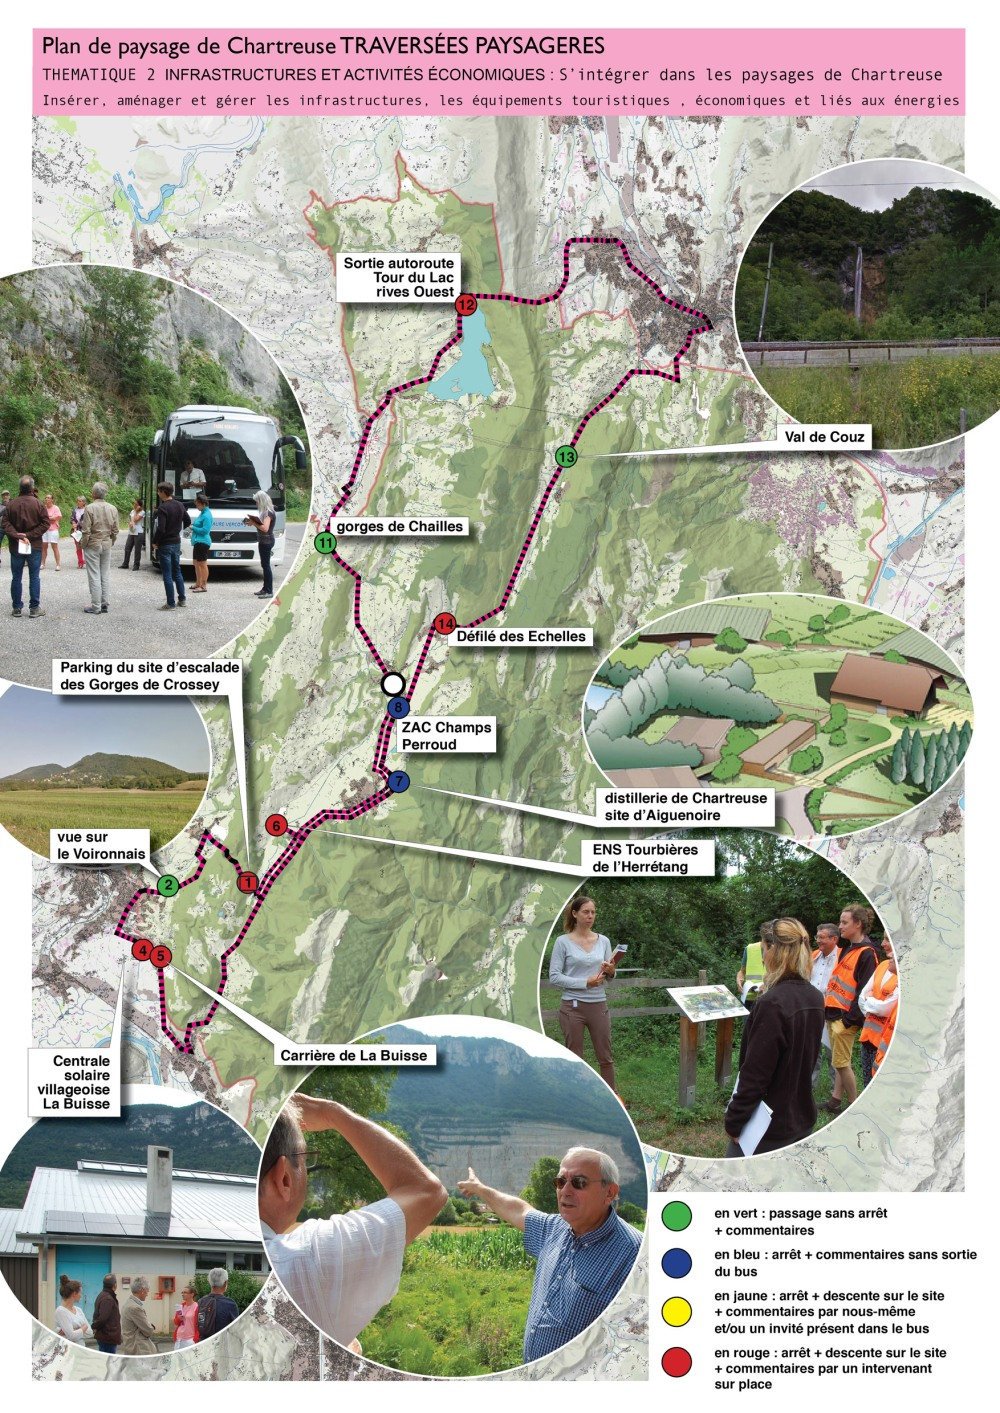 traversee infra et activites-carte_V3photo2